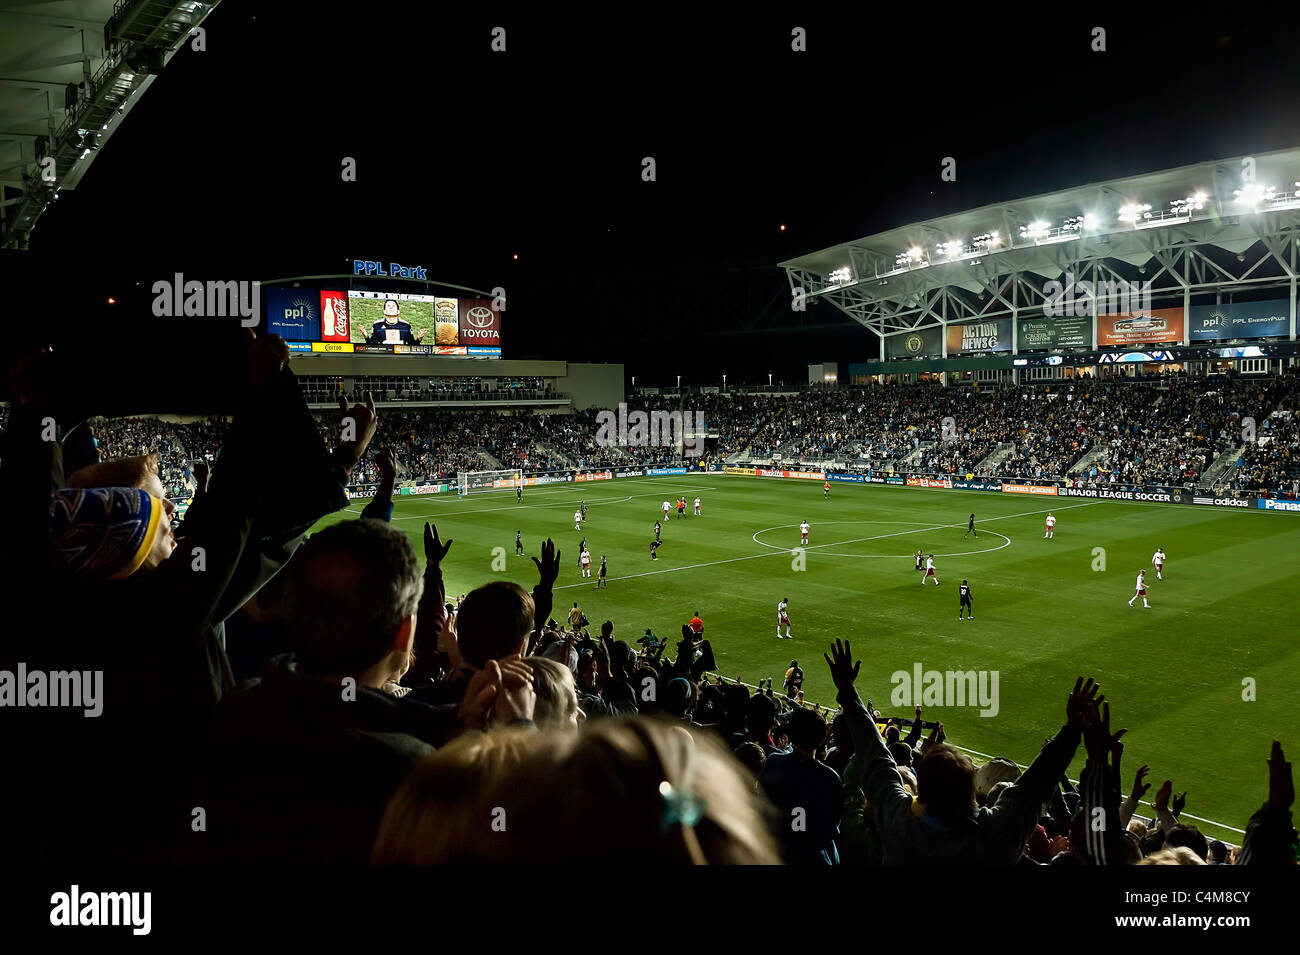 Philadelphia Union fans during MLS soccer match. - Stock Image